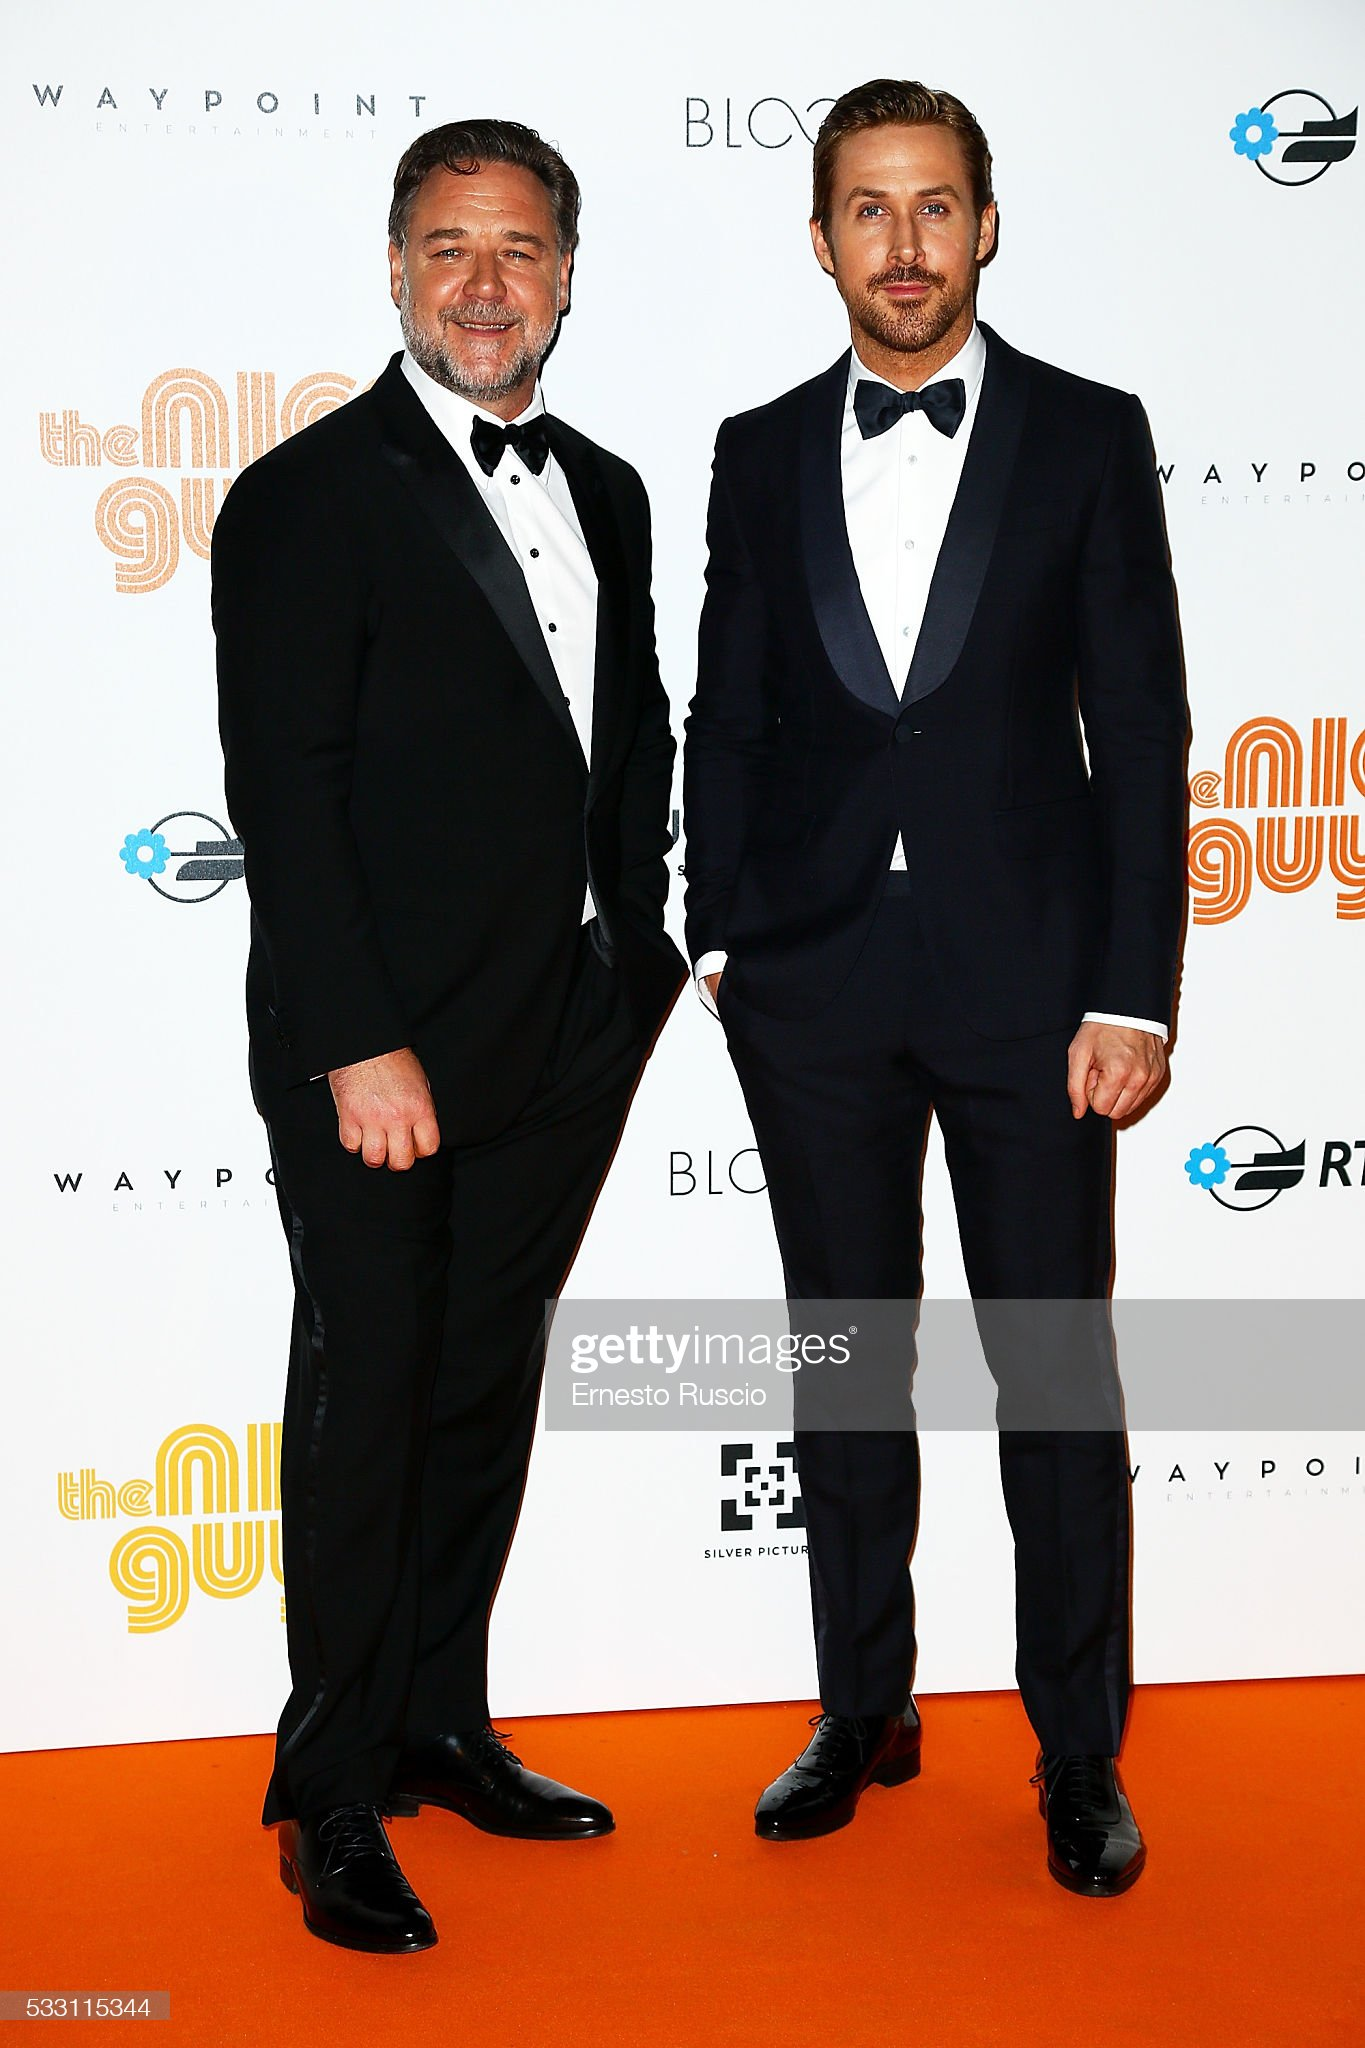 ¿Cuánto mide Russell Crowe? - Real height Russell-crowe-and-ryan-gosling-attend-the-the-nice-guys-premiere-at-picture-id533115344?s=2048x2048